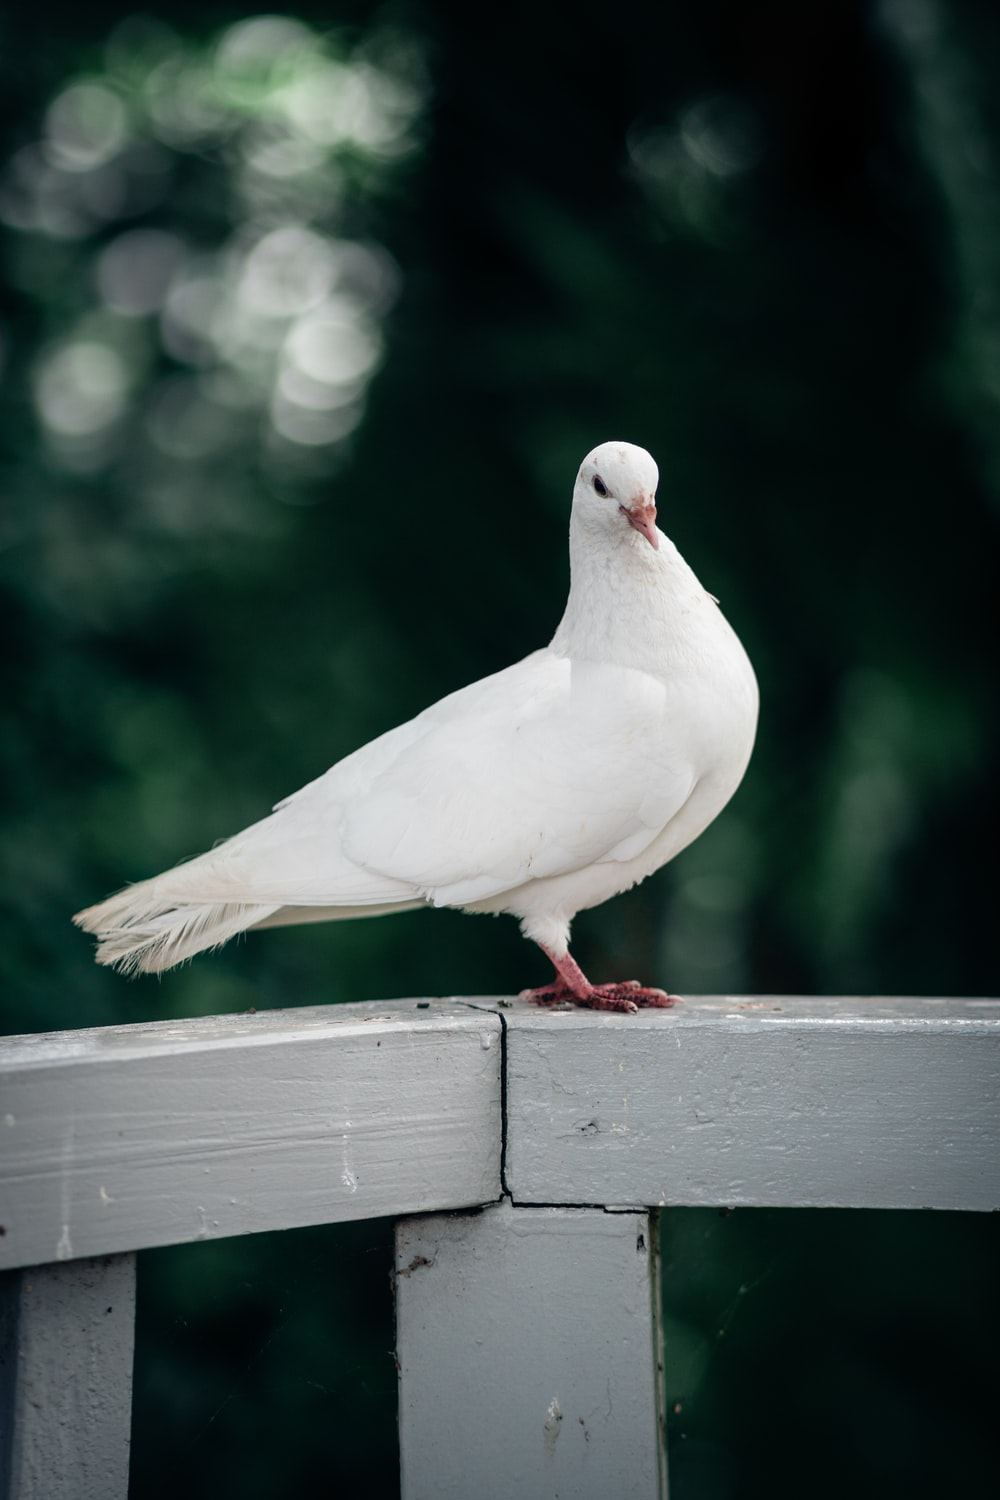 white bird on brown wooden fence during daytime